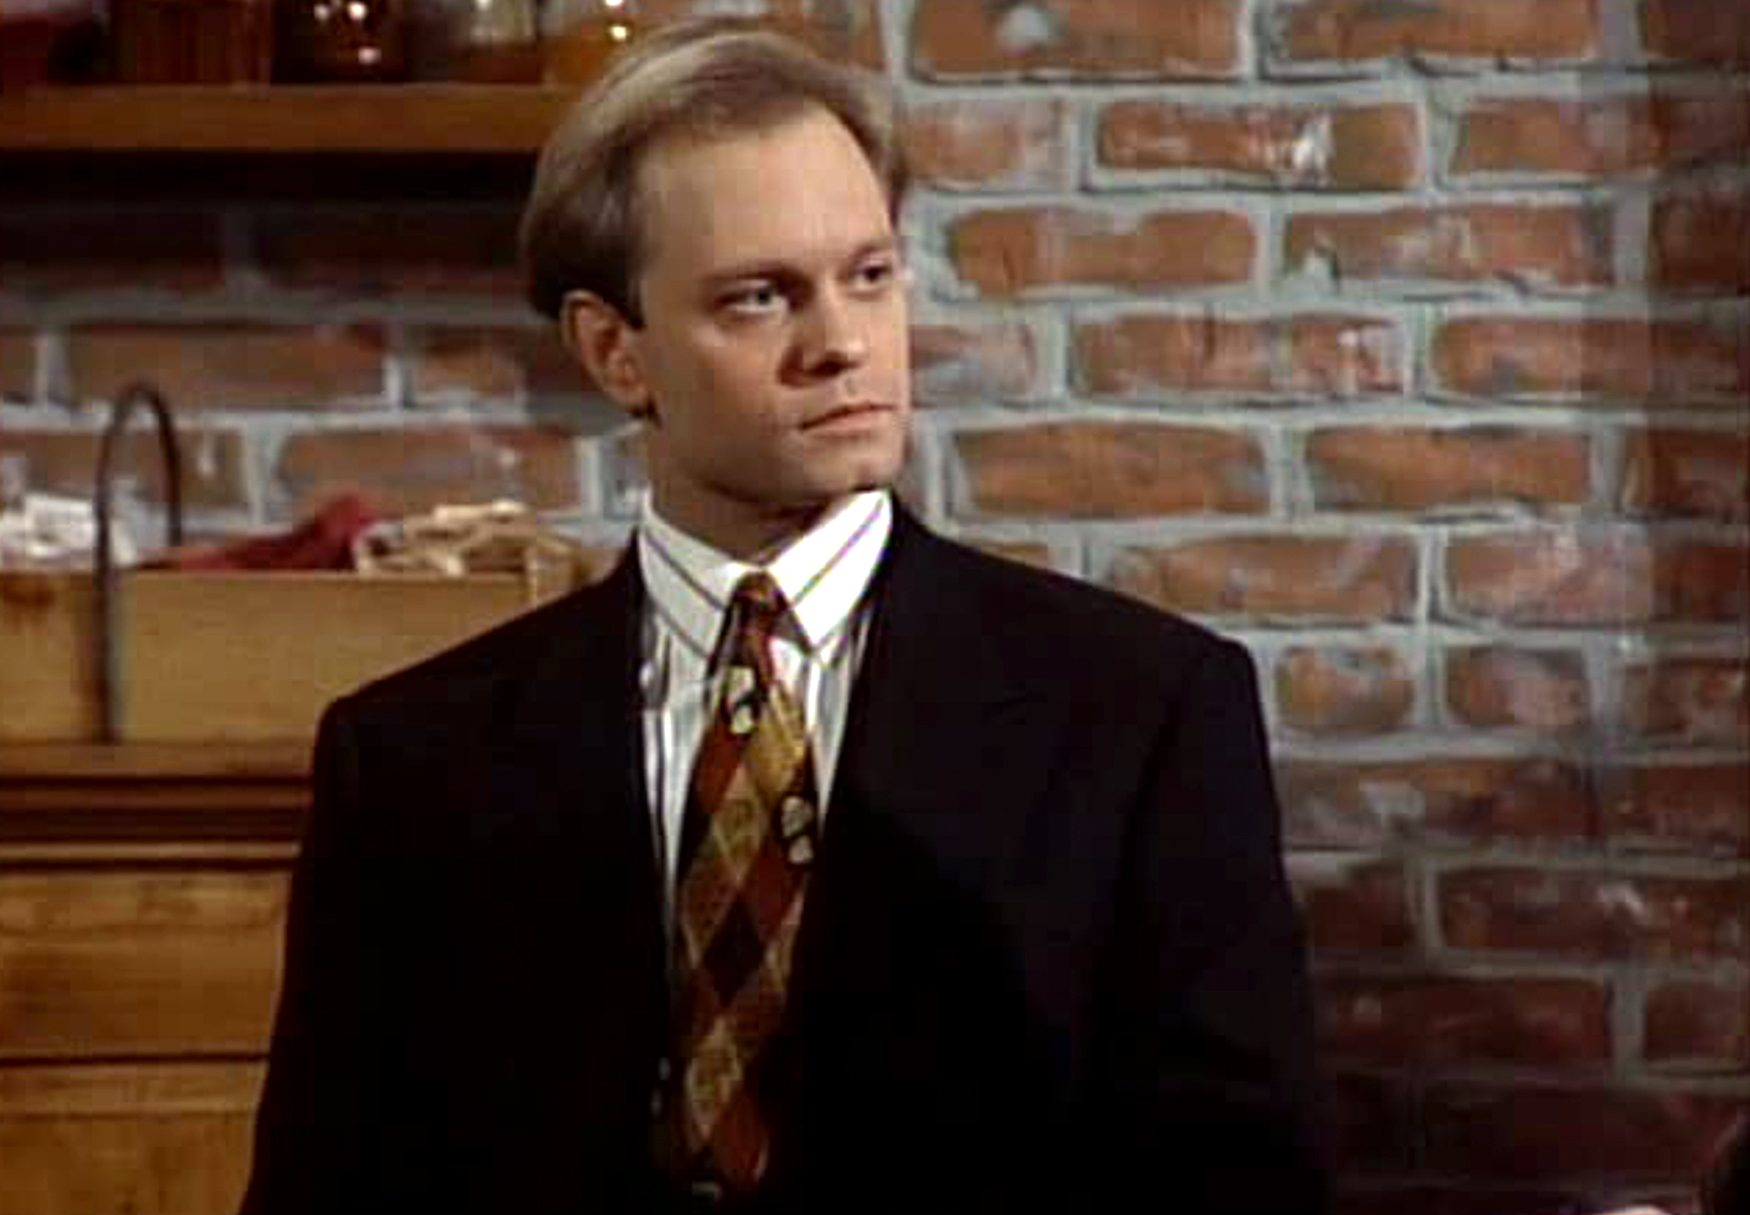 Niles Crane e1622023180662 10 Things You Didn't Know About Frasier